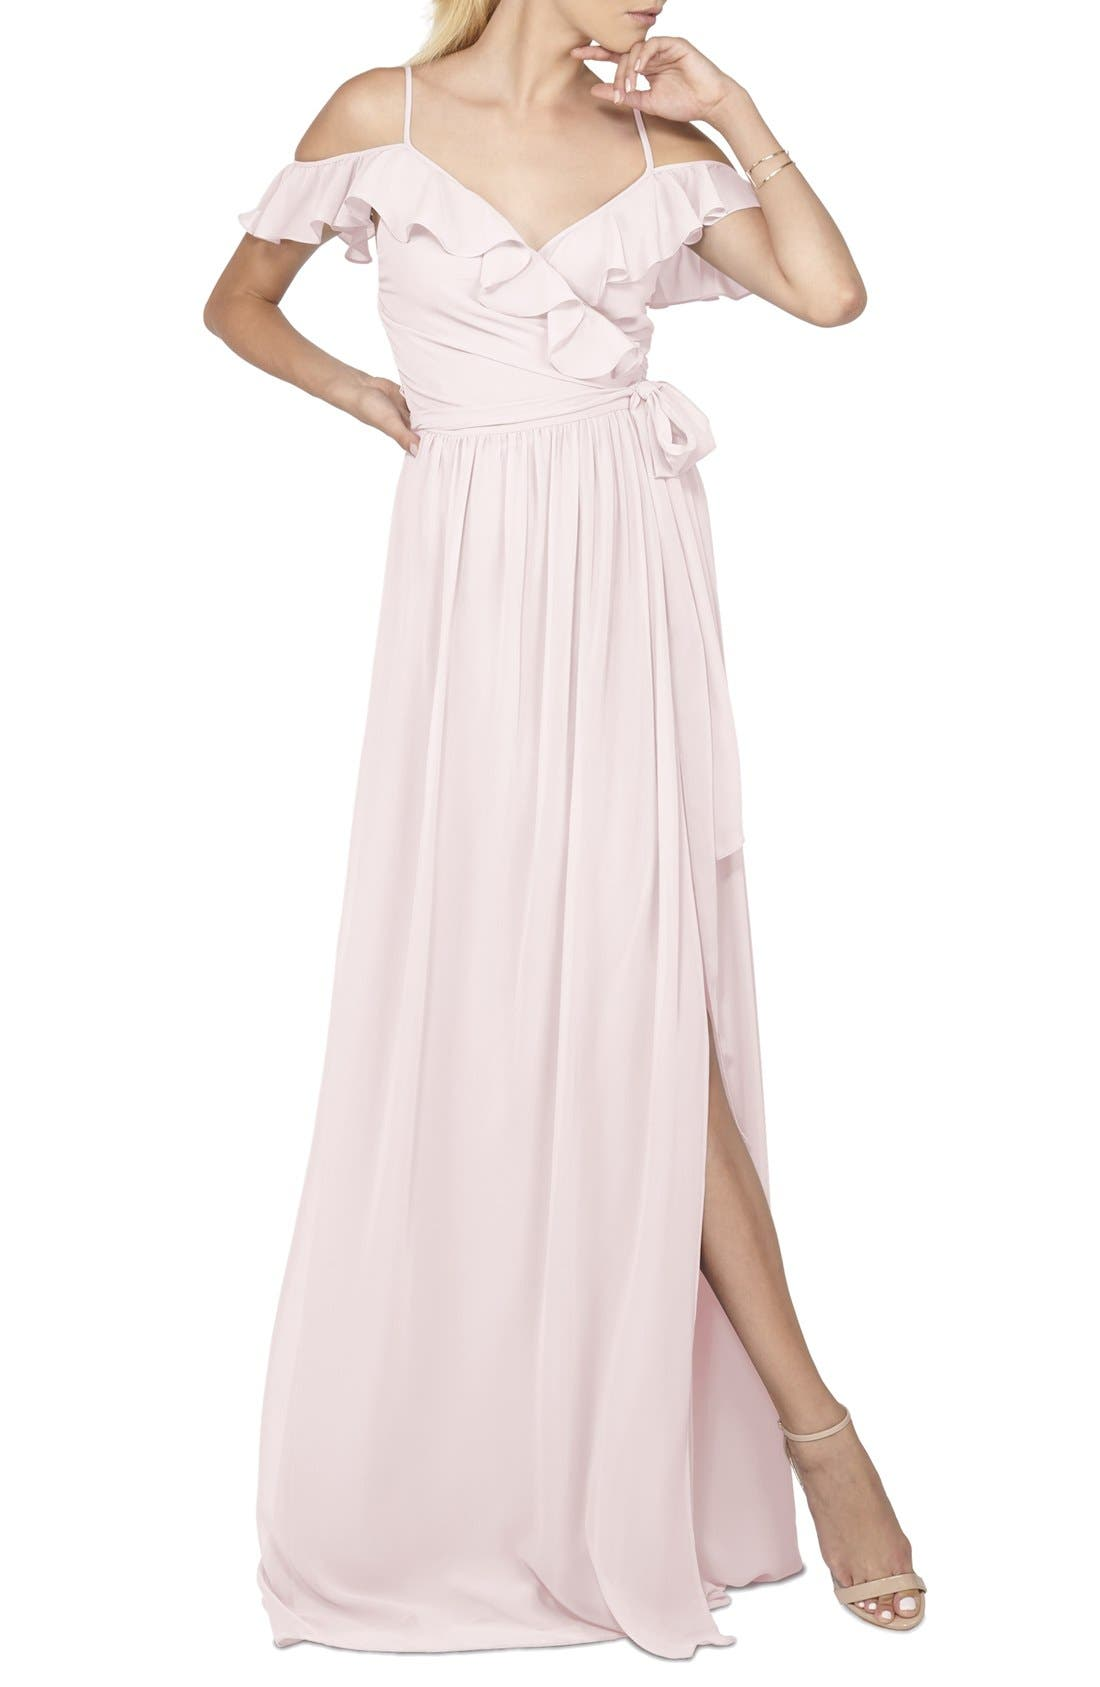 Main Image - Ceremony by Joanna August 'Portia' Off the Shoulder Ruffle Wrap Chiffon Gown